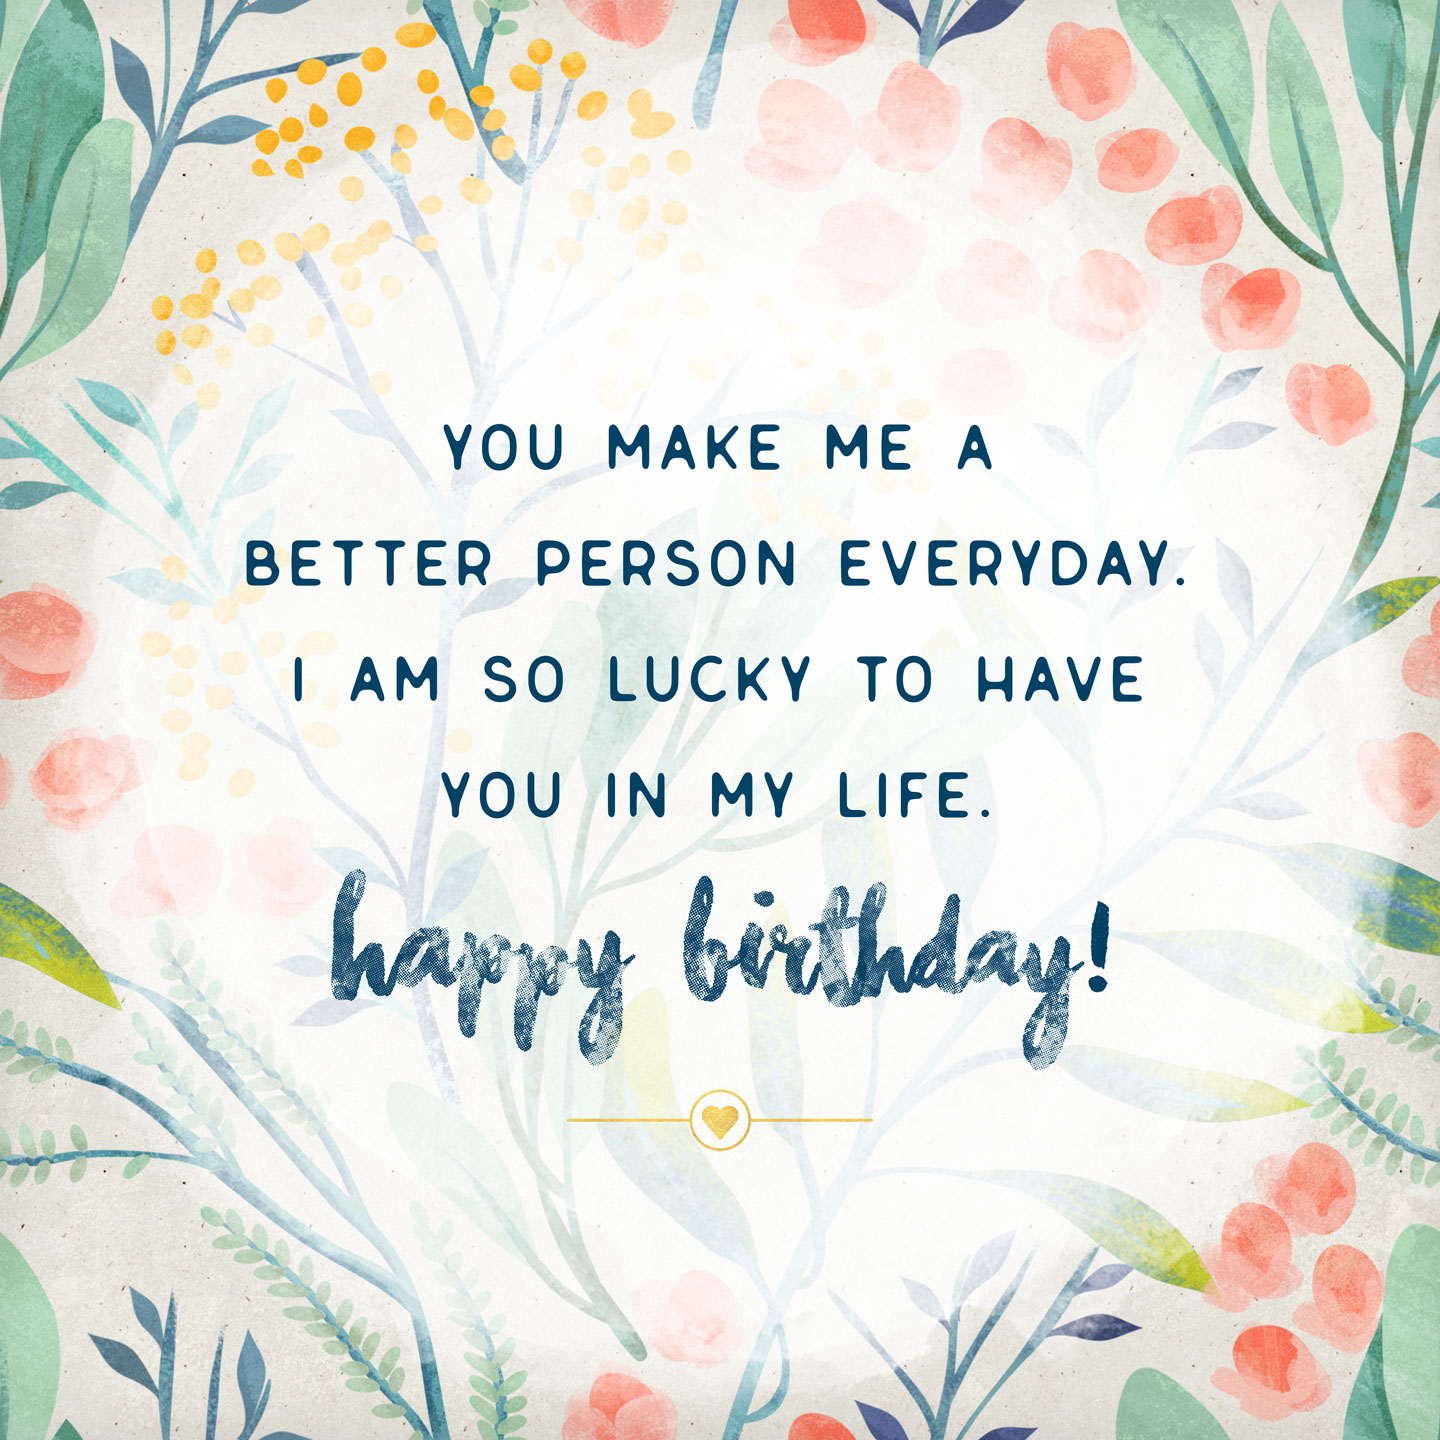 birthday-card-messages-significant-other